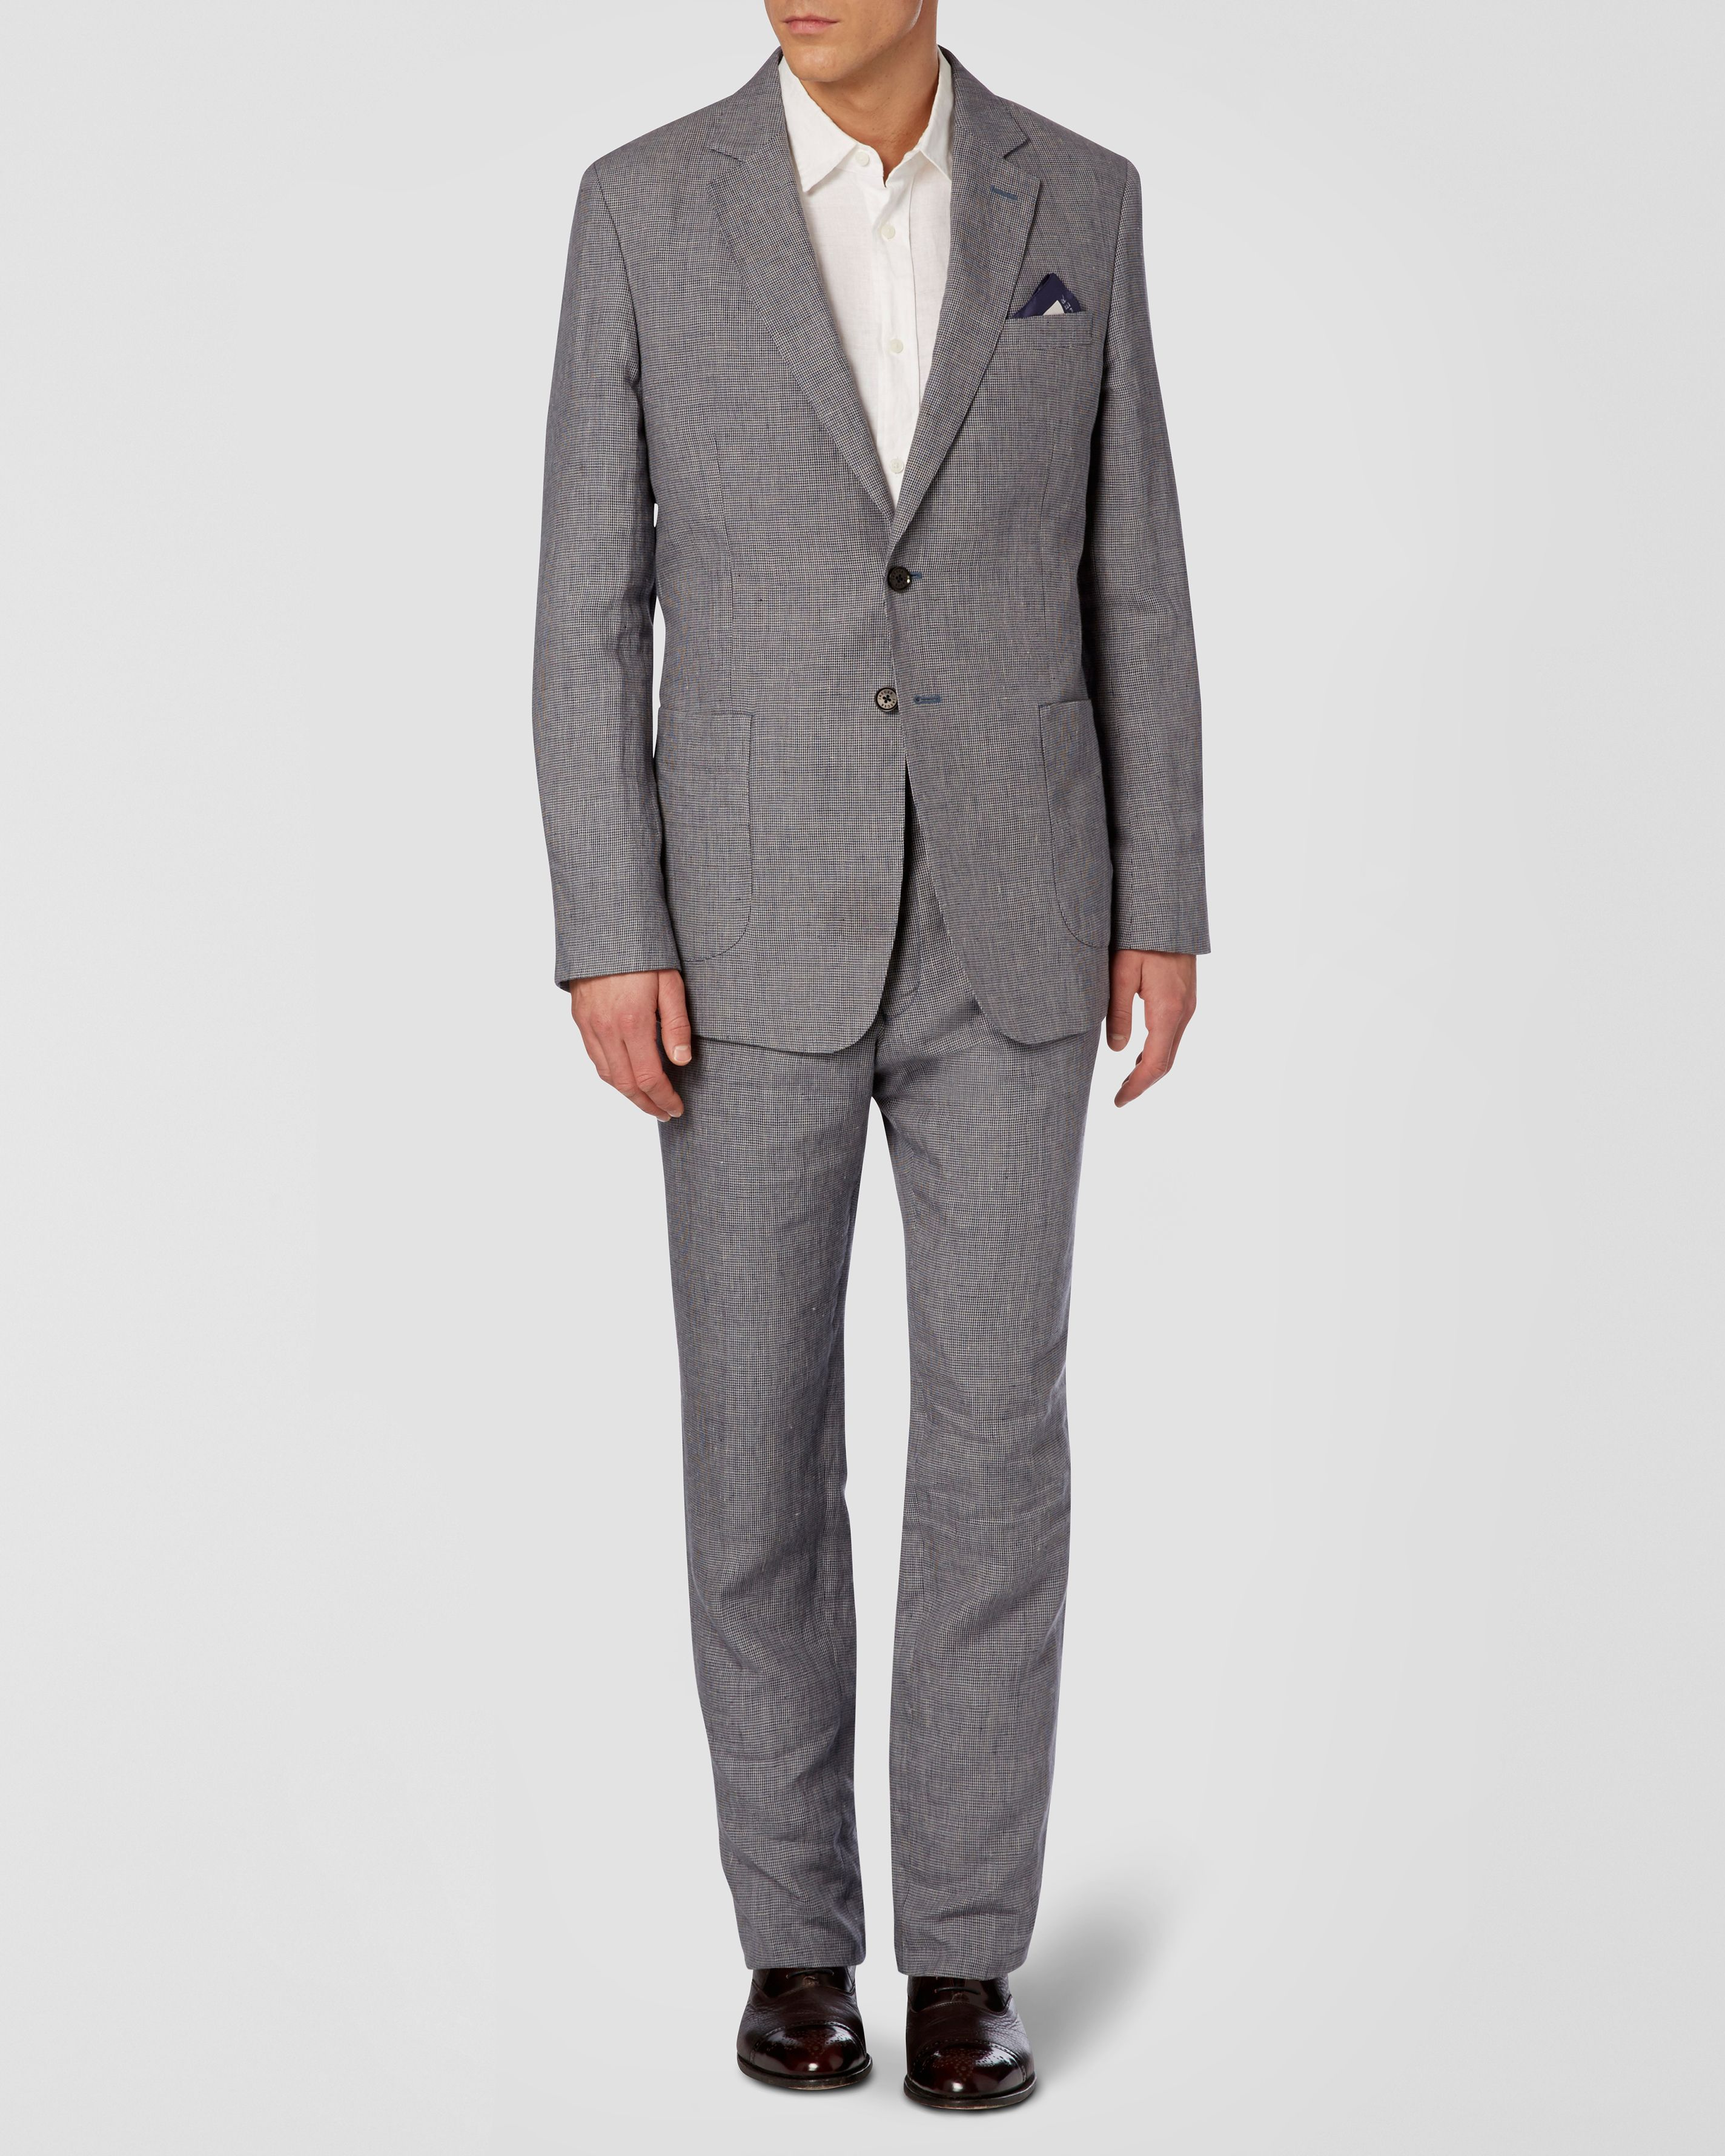 Irish Linen Puppytooth suit Jacket